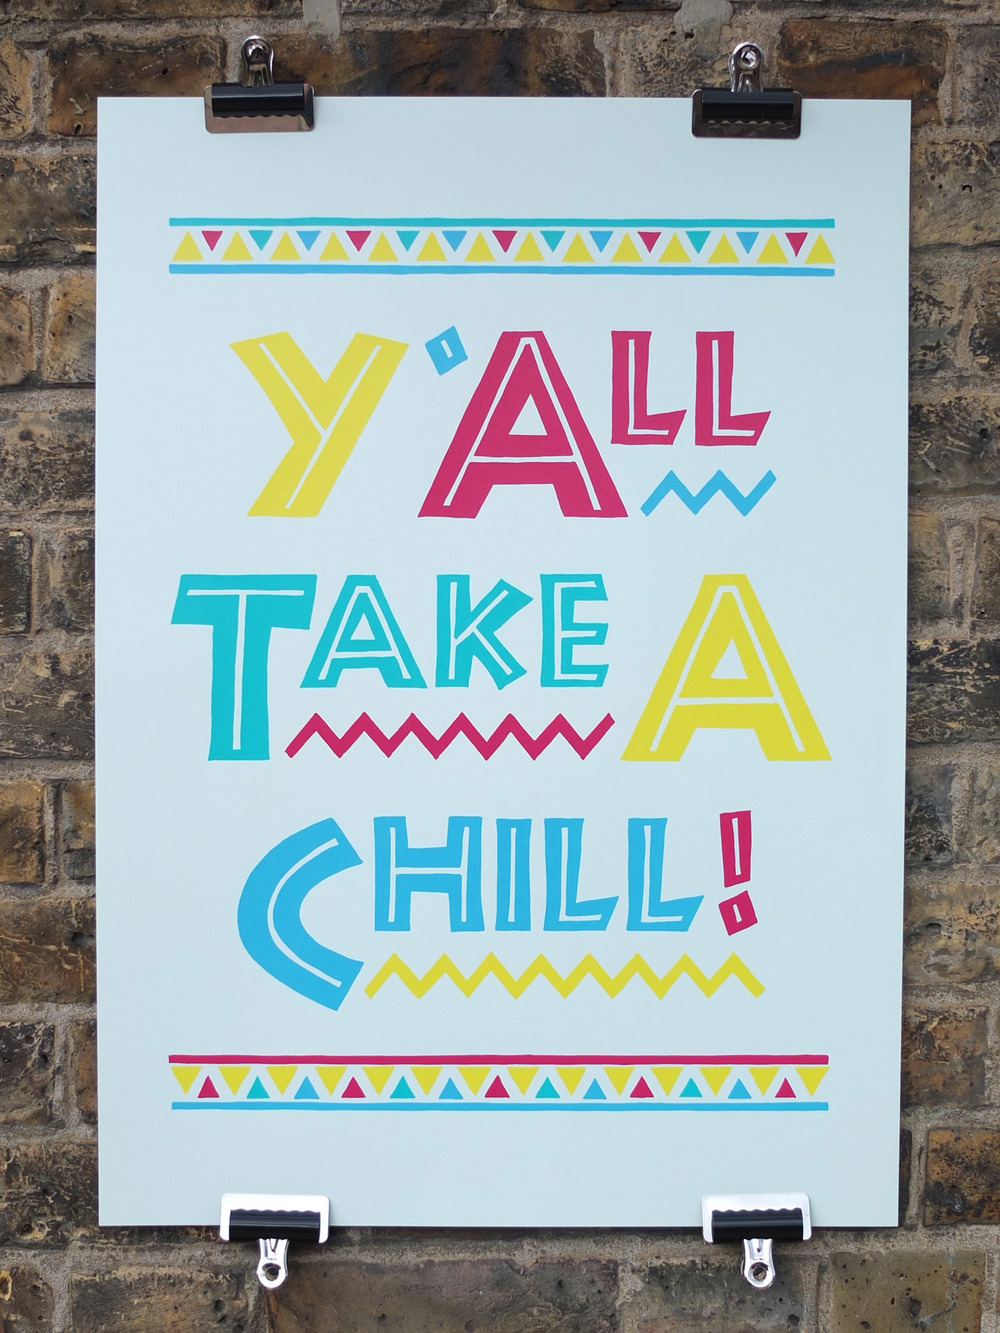 Rose Stallard Do The Right Thing Screen Printed Poster Somerset House FIlm 4 Summer Screenings Print Show